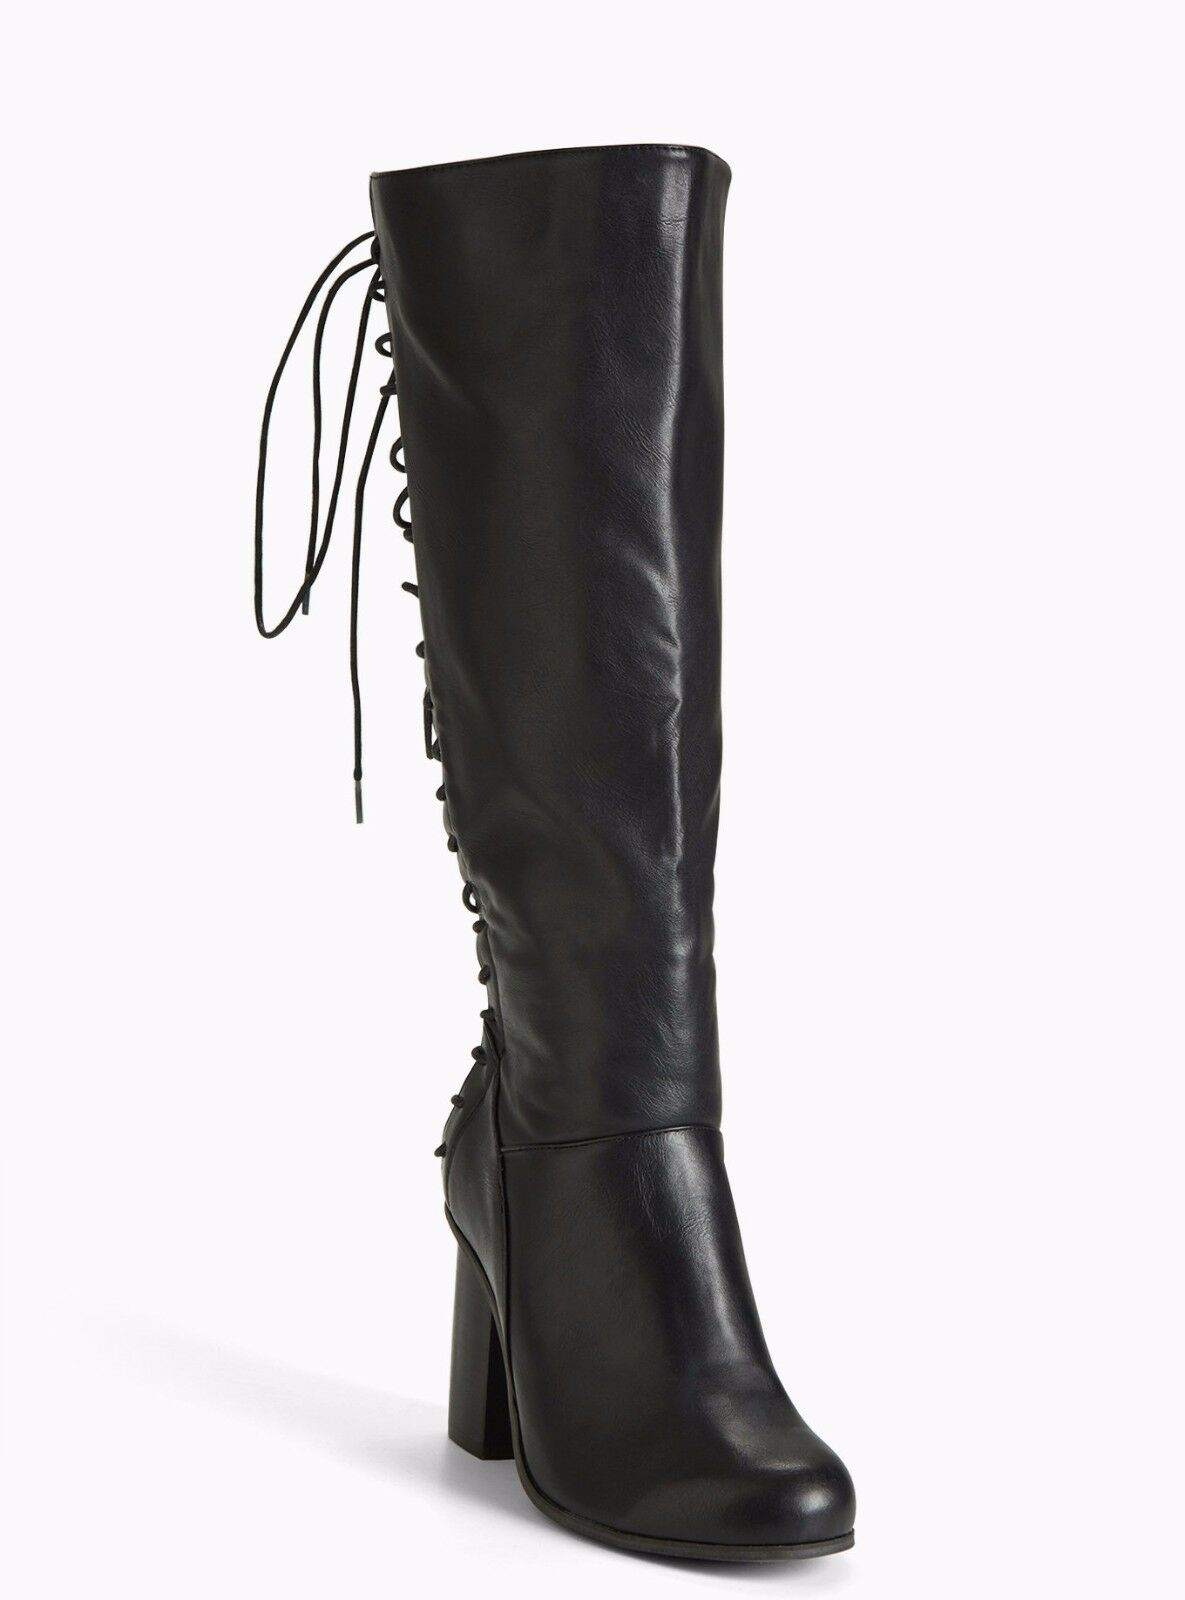 Torrid Lace Up Back Heel Boots Wide Width & Wide Calf Black 8  84942